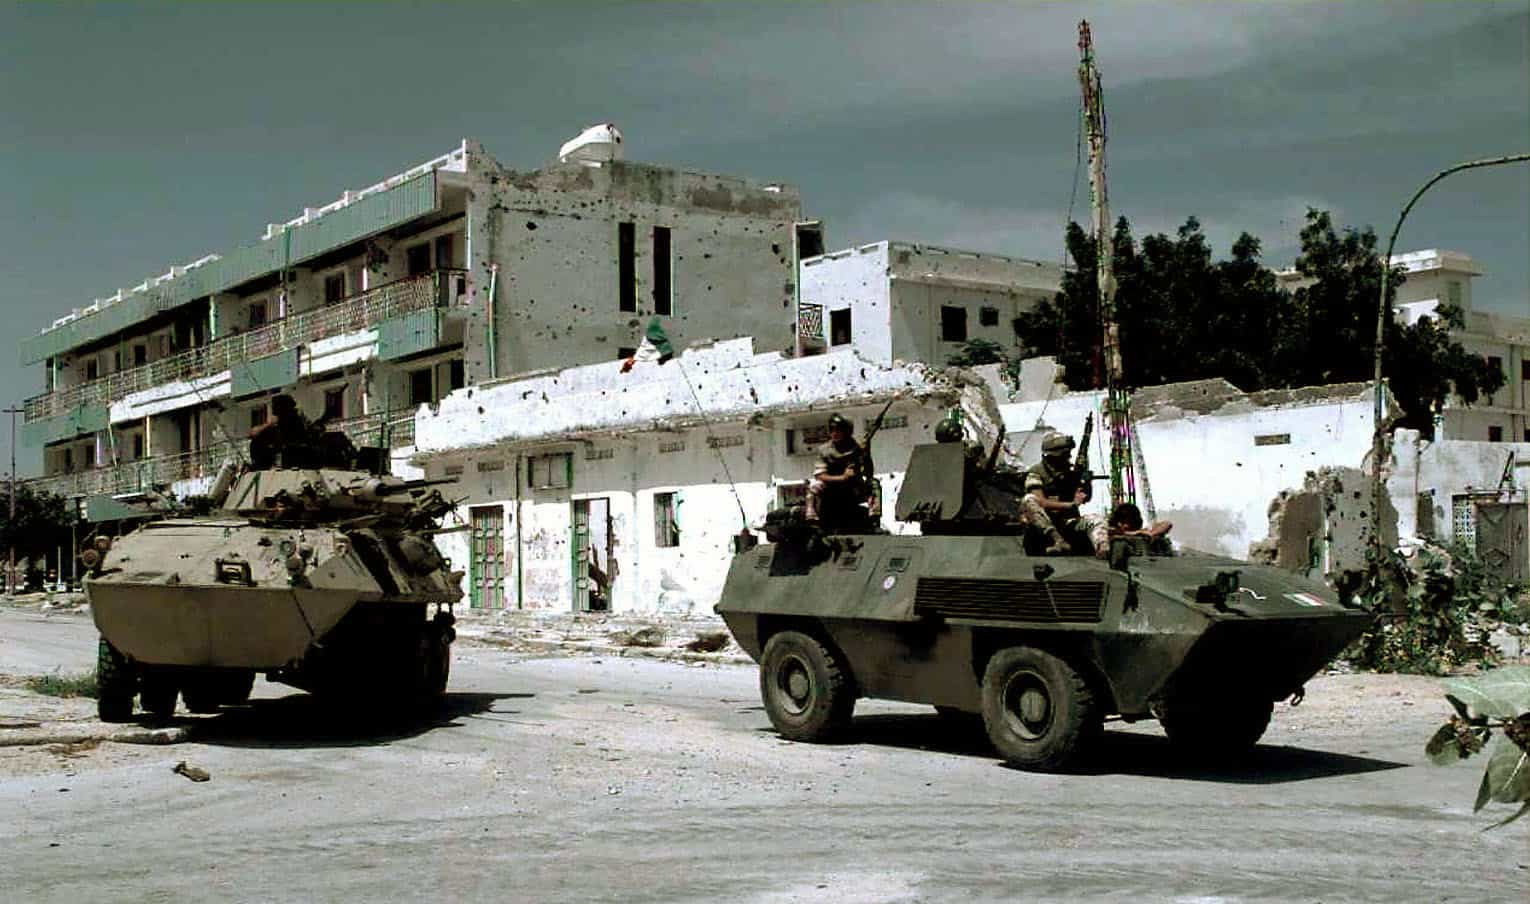 1992; U.S. TROOPS IN SOMALIA